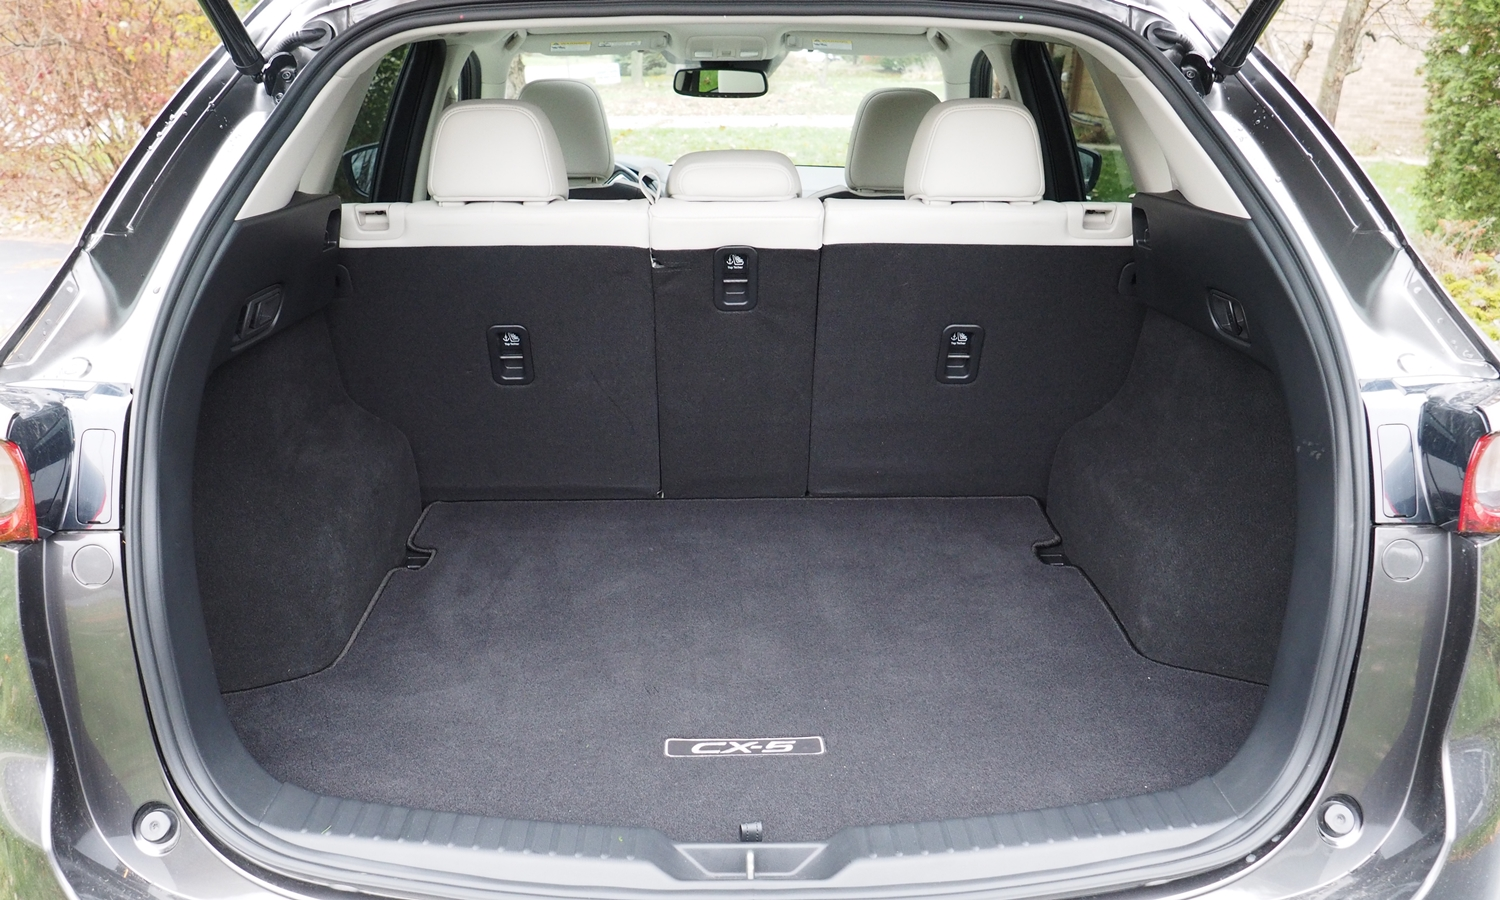 Mazda CX-5 Photos: 2017 Mazda CX-5 cargo area